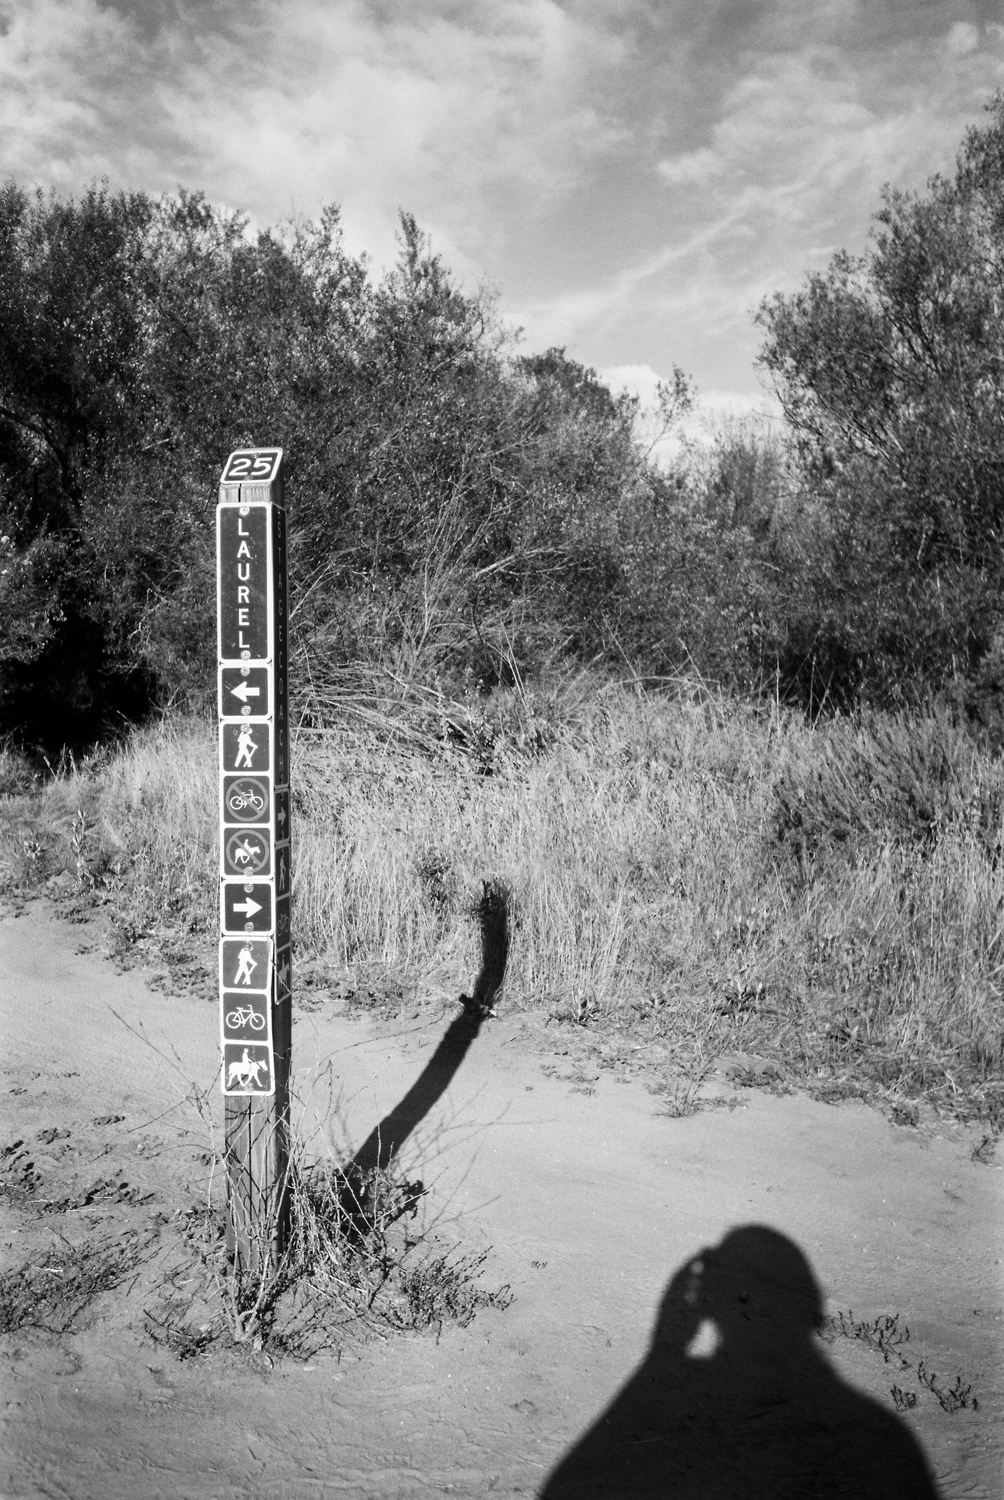 A trail marker along the way.